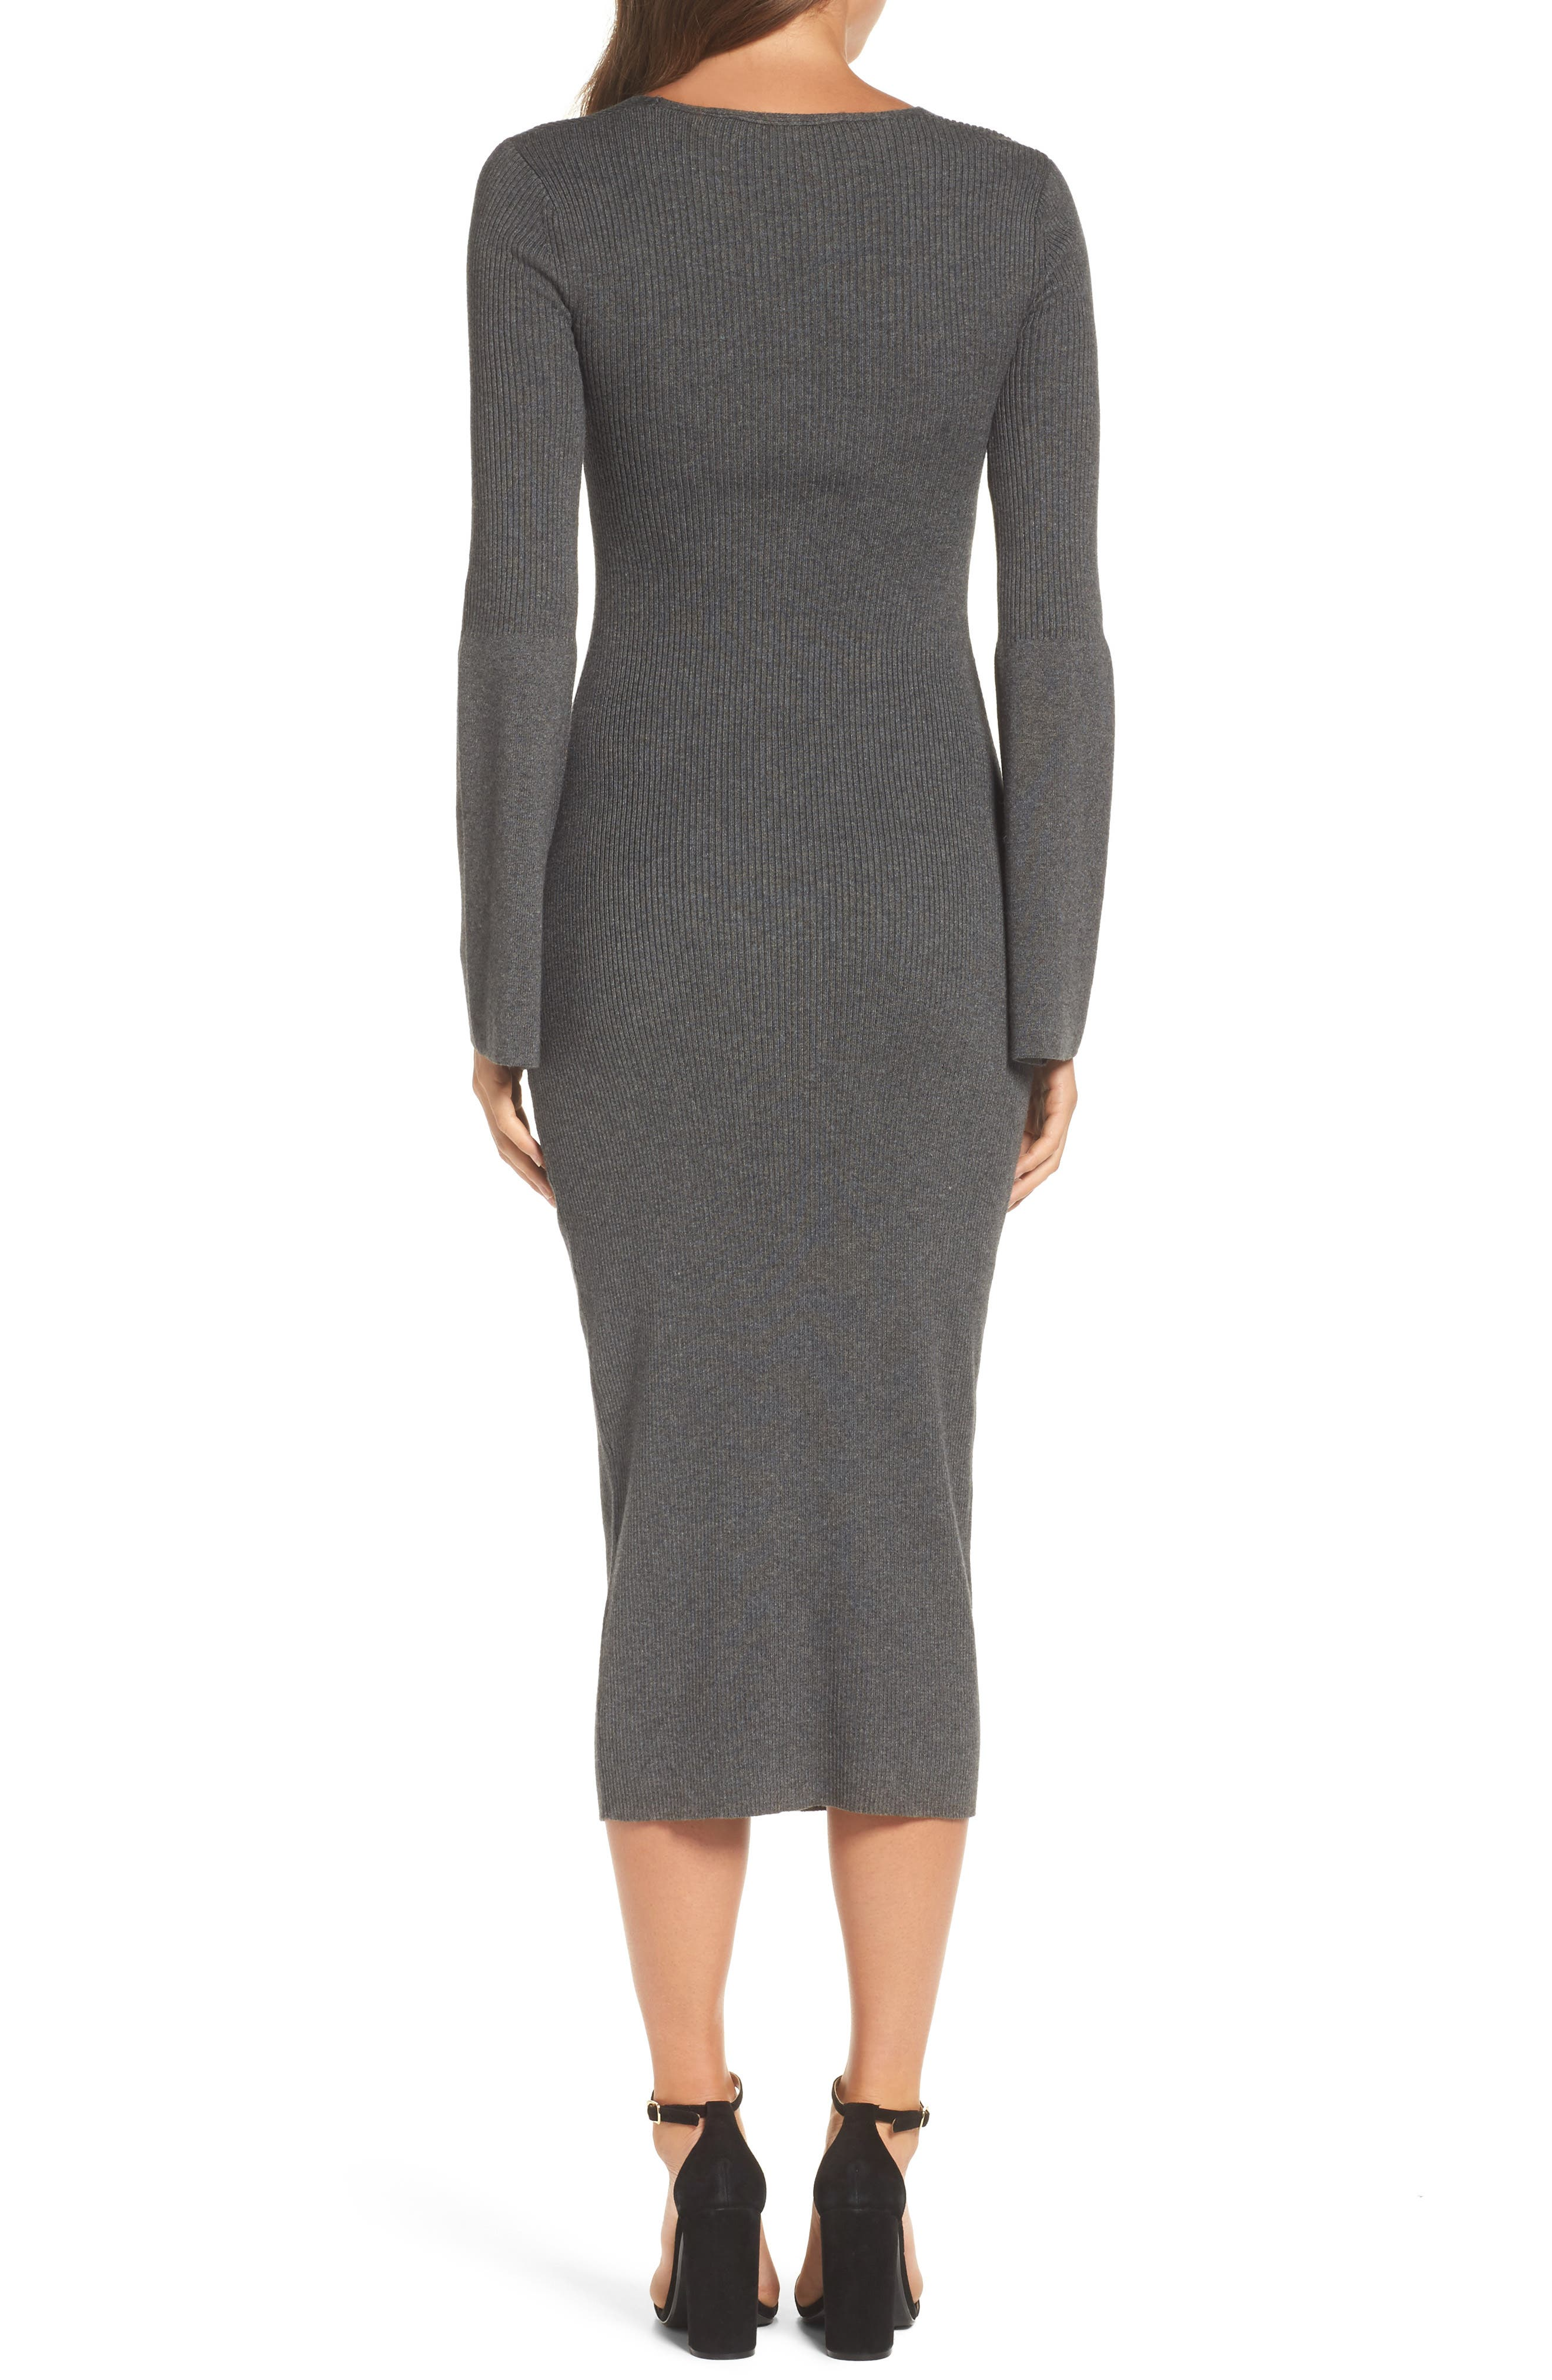 Virgie Knits Midi Dress,                             Alternate thumbnail 2, color,                             Charcoal